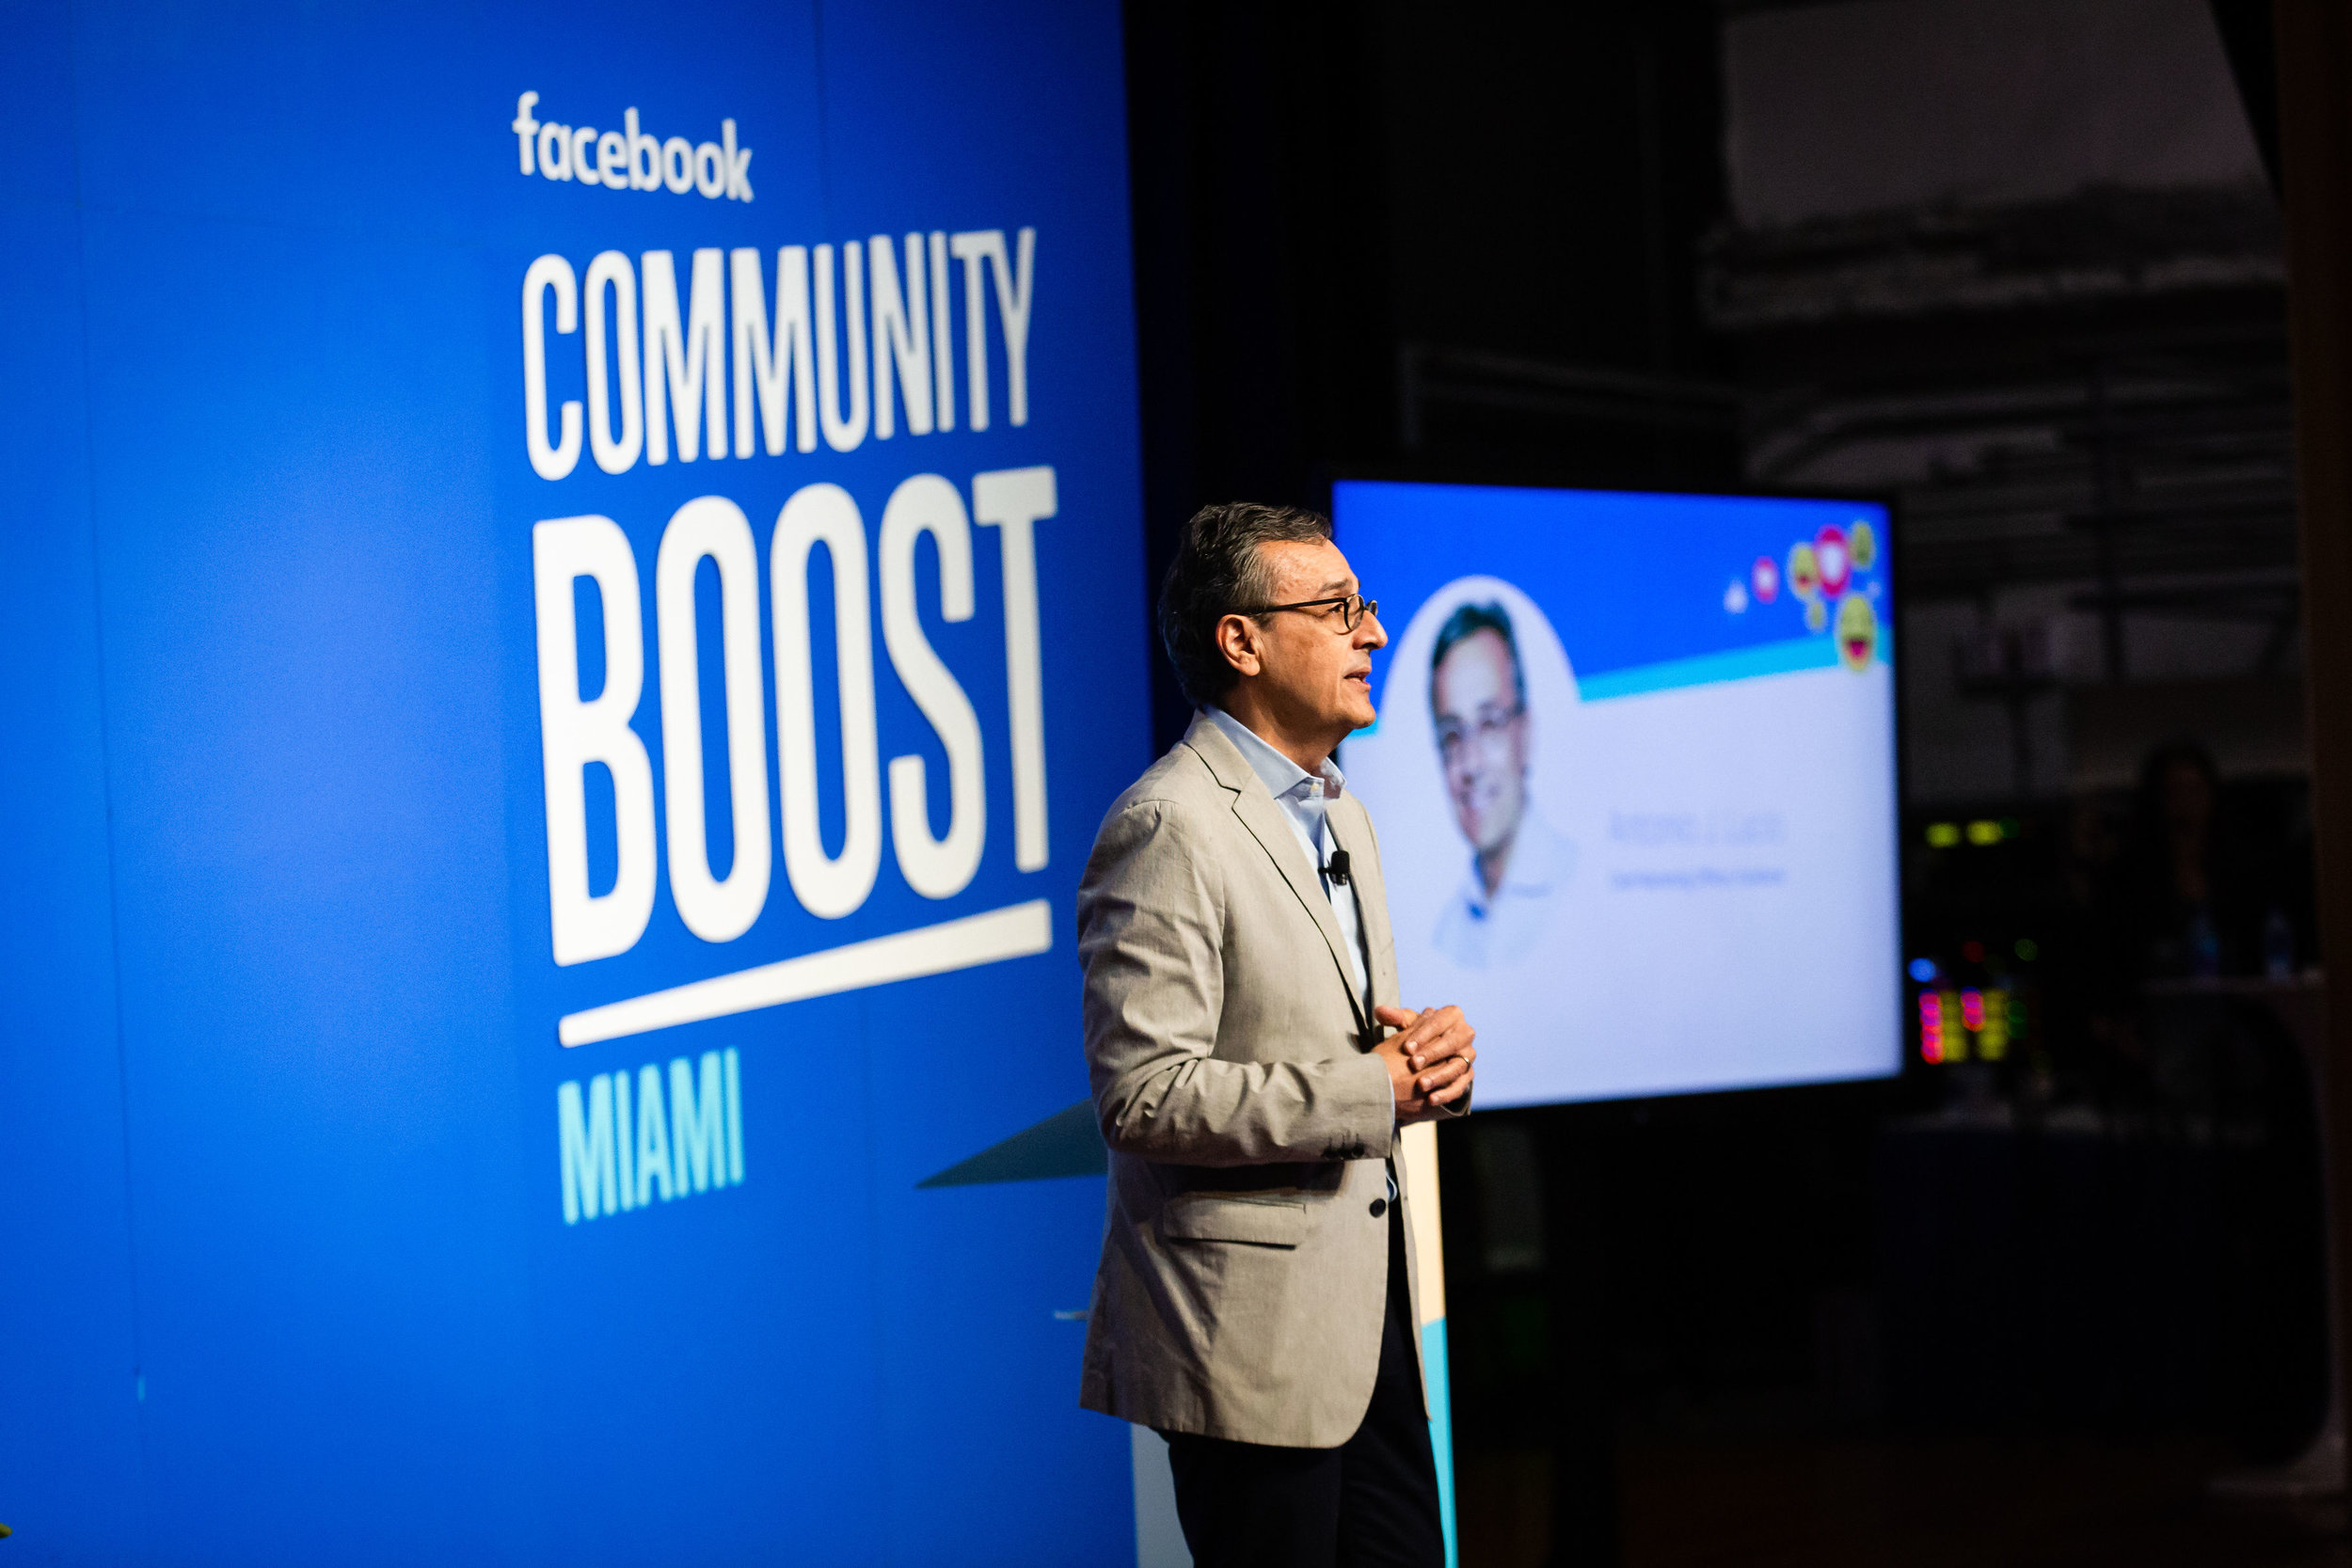 Facebook CMO Antonio Lucio - Miami Community Boost.jpg